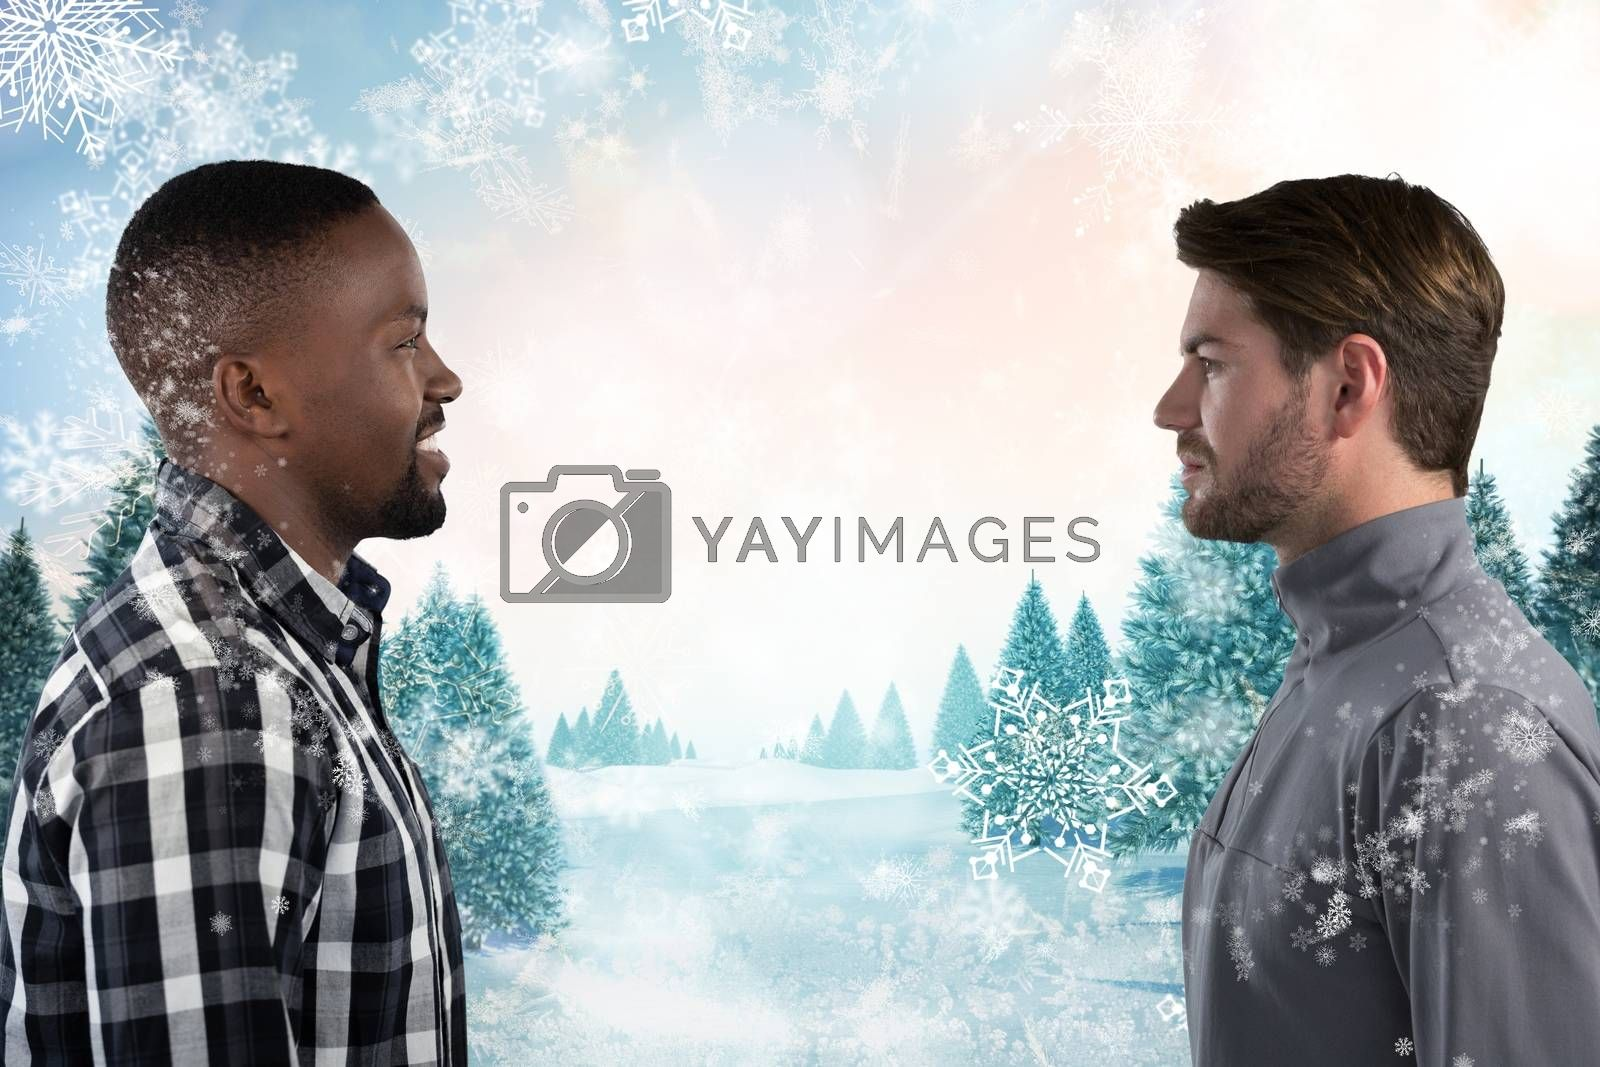 Digital composite of Men  looking at each other in snowy weather